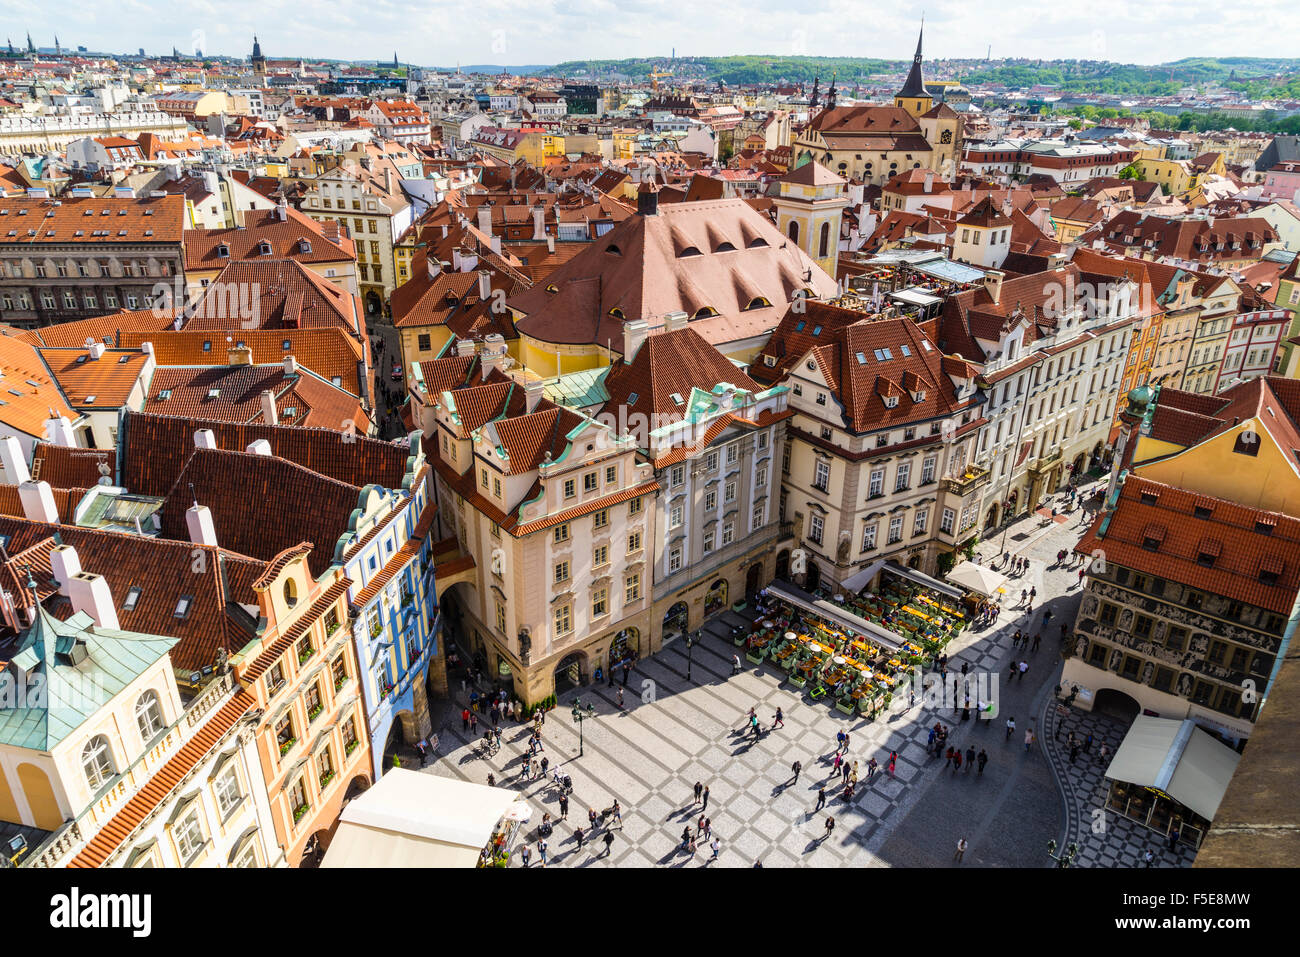 High angle view of buildings in Old Town Square, UNESCO World Heritage Site, Prague, Czech Republic, Europe - Stock Image